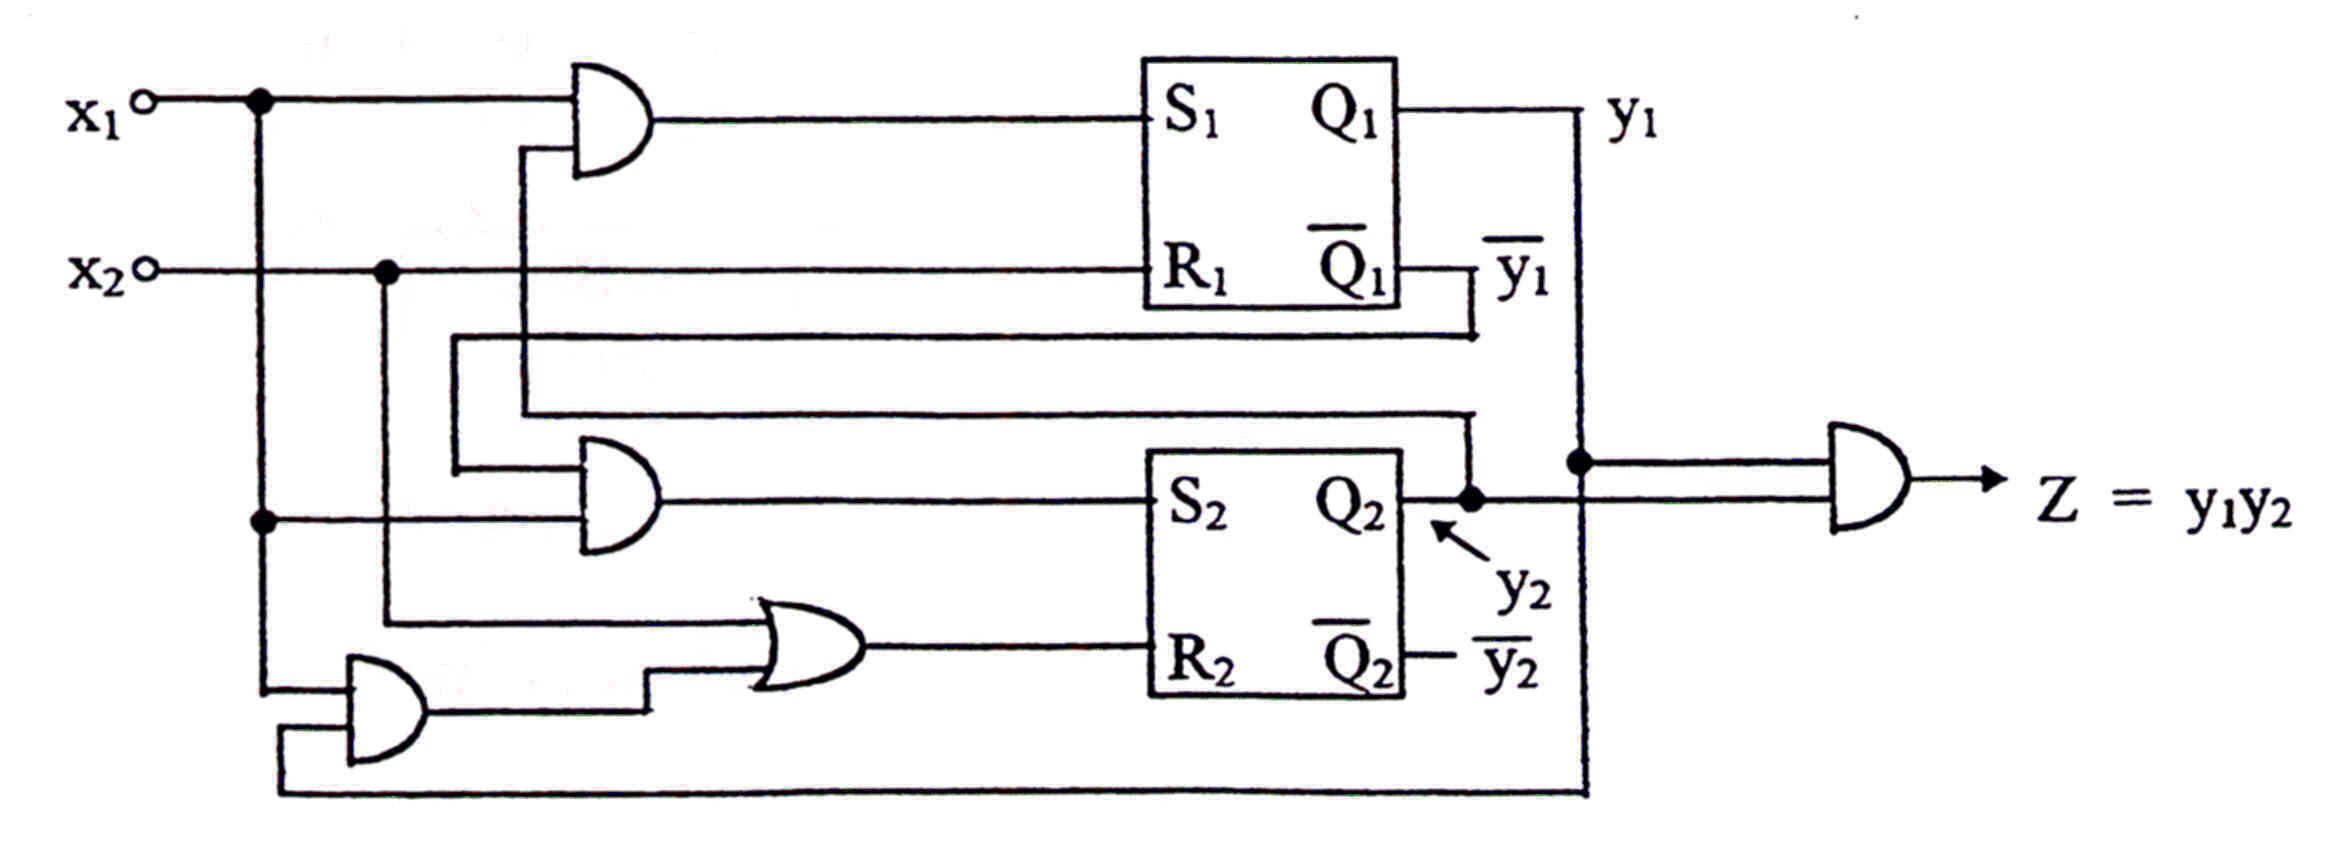 State Assignment To Circuit Realisation